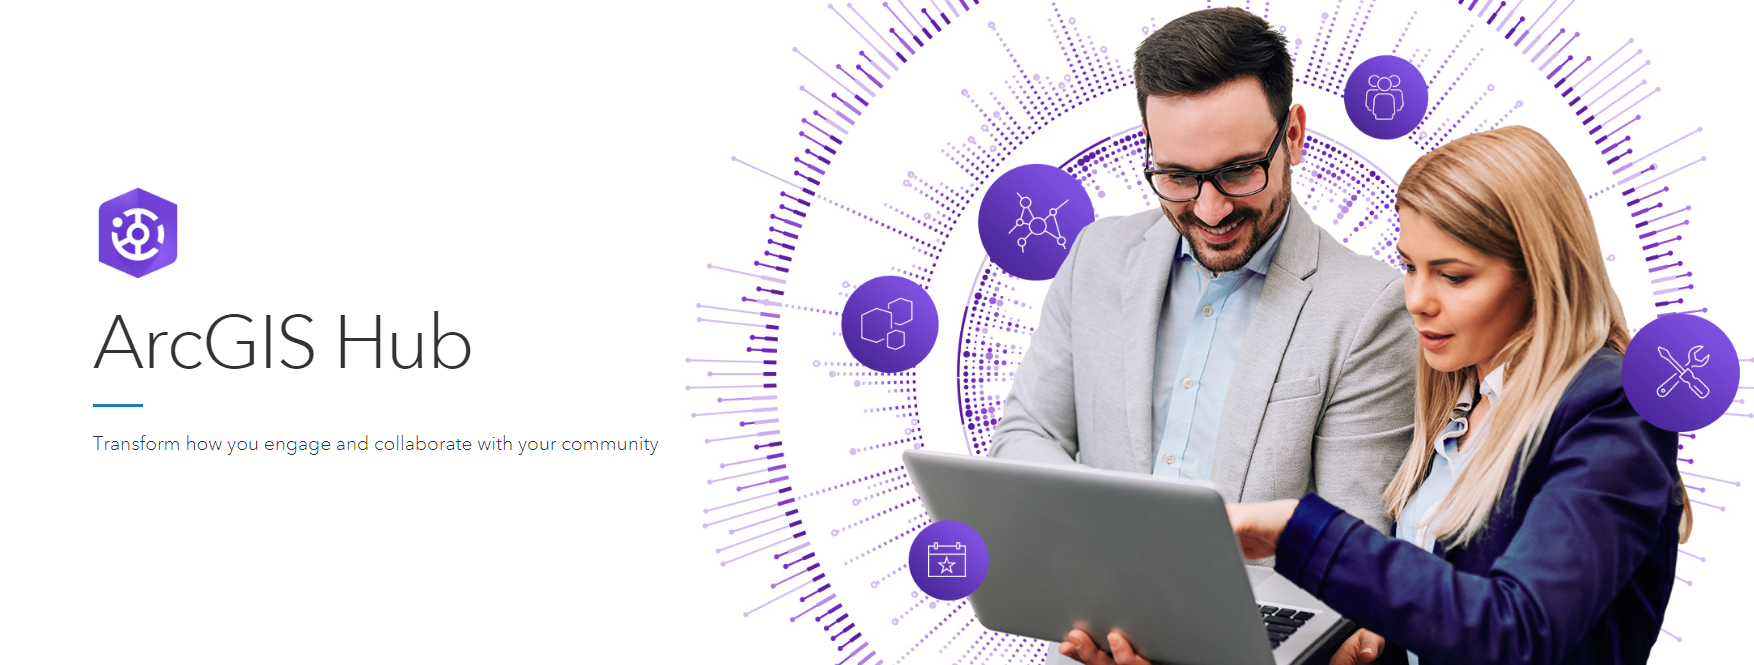 "Banner image reading ""ArcGIS Hub - Transform how you engage and collaborate with your community"" with an image of two people looking at a laptop screen"